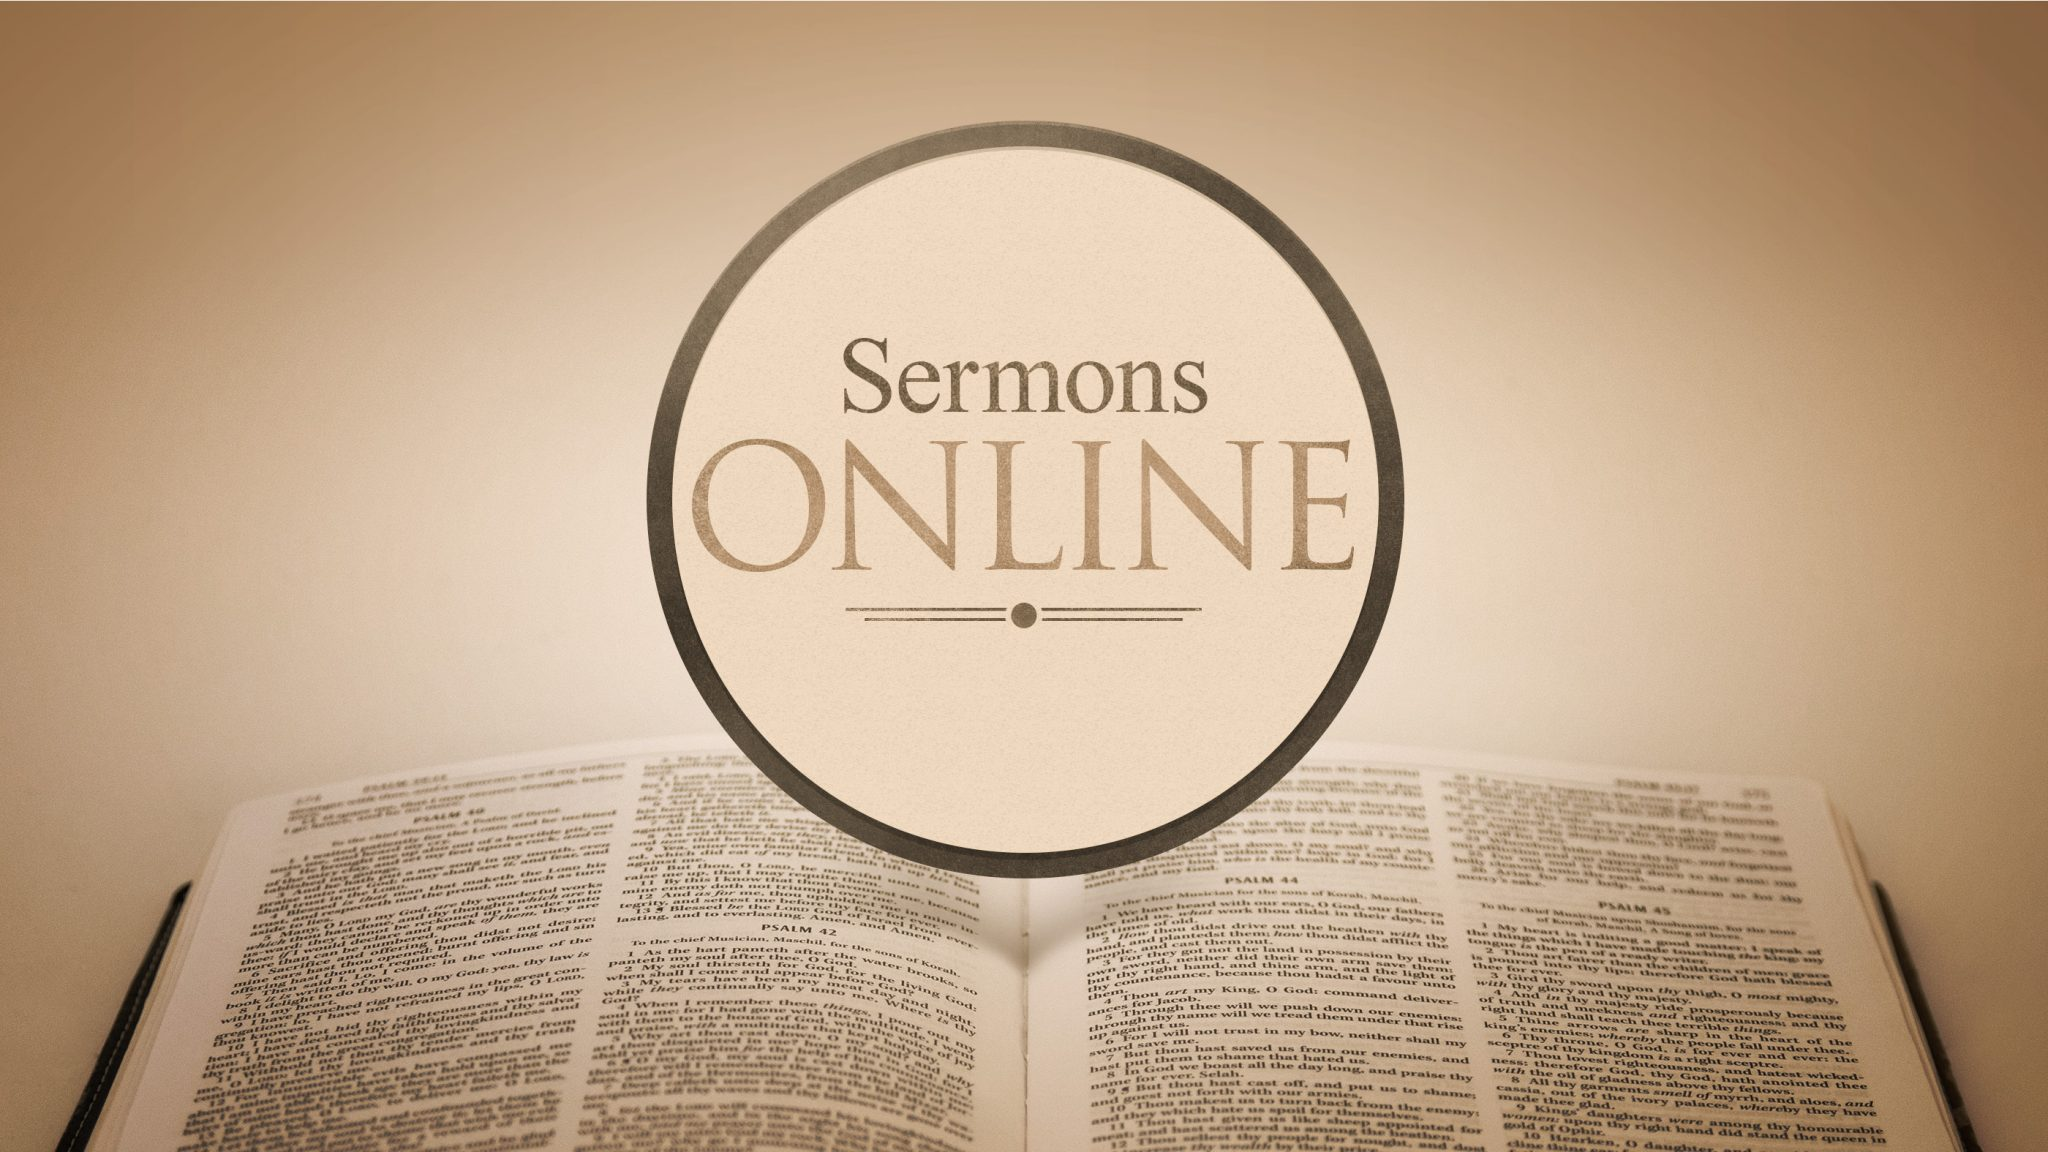 Andy's Sermons Online